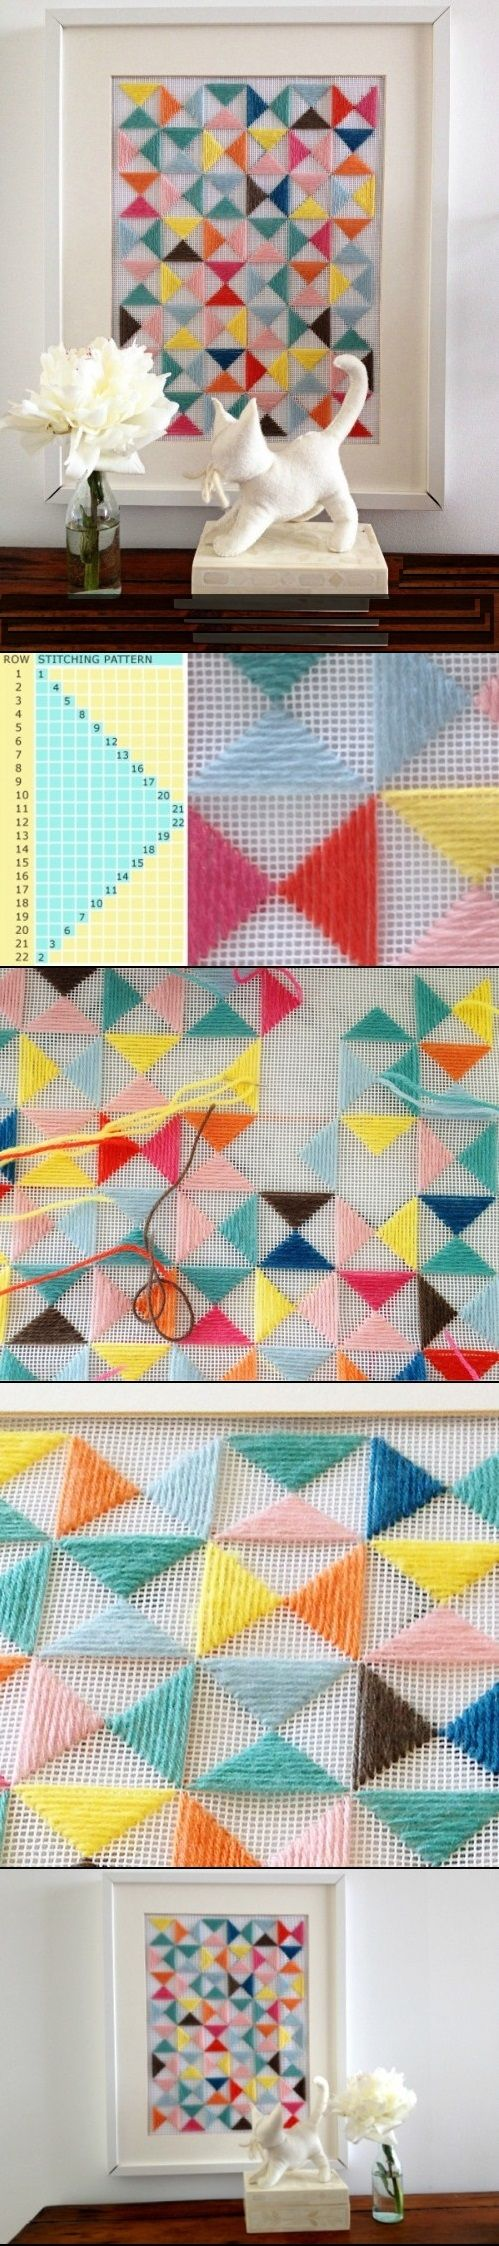 DIY Geometric Embroidery for wall art